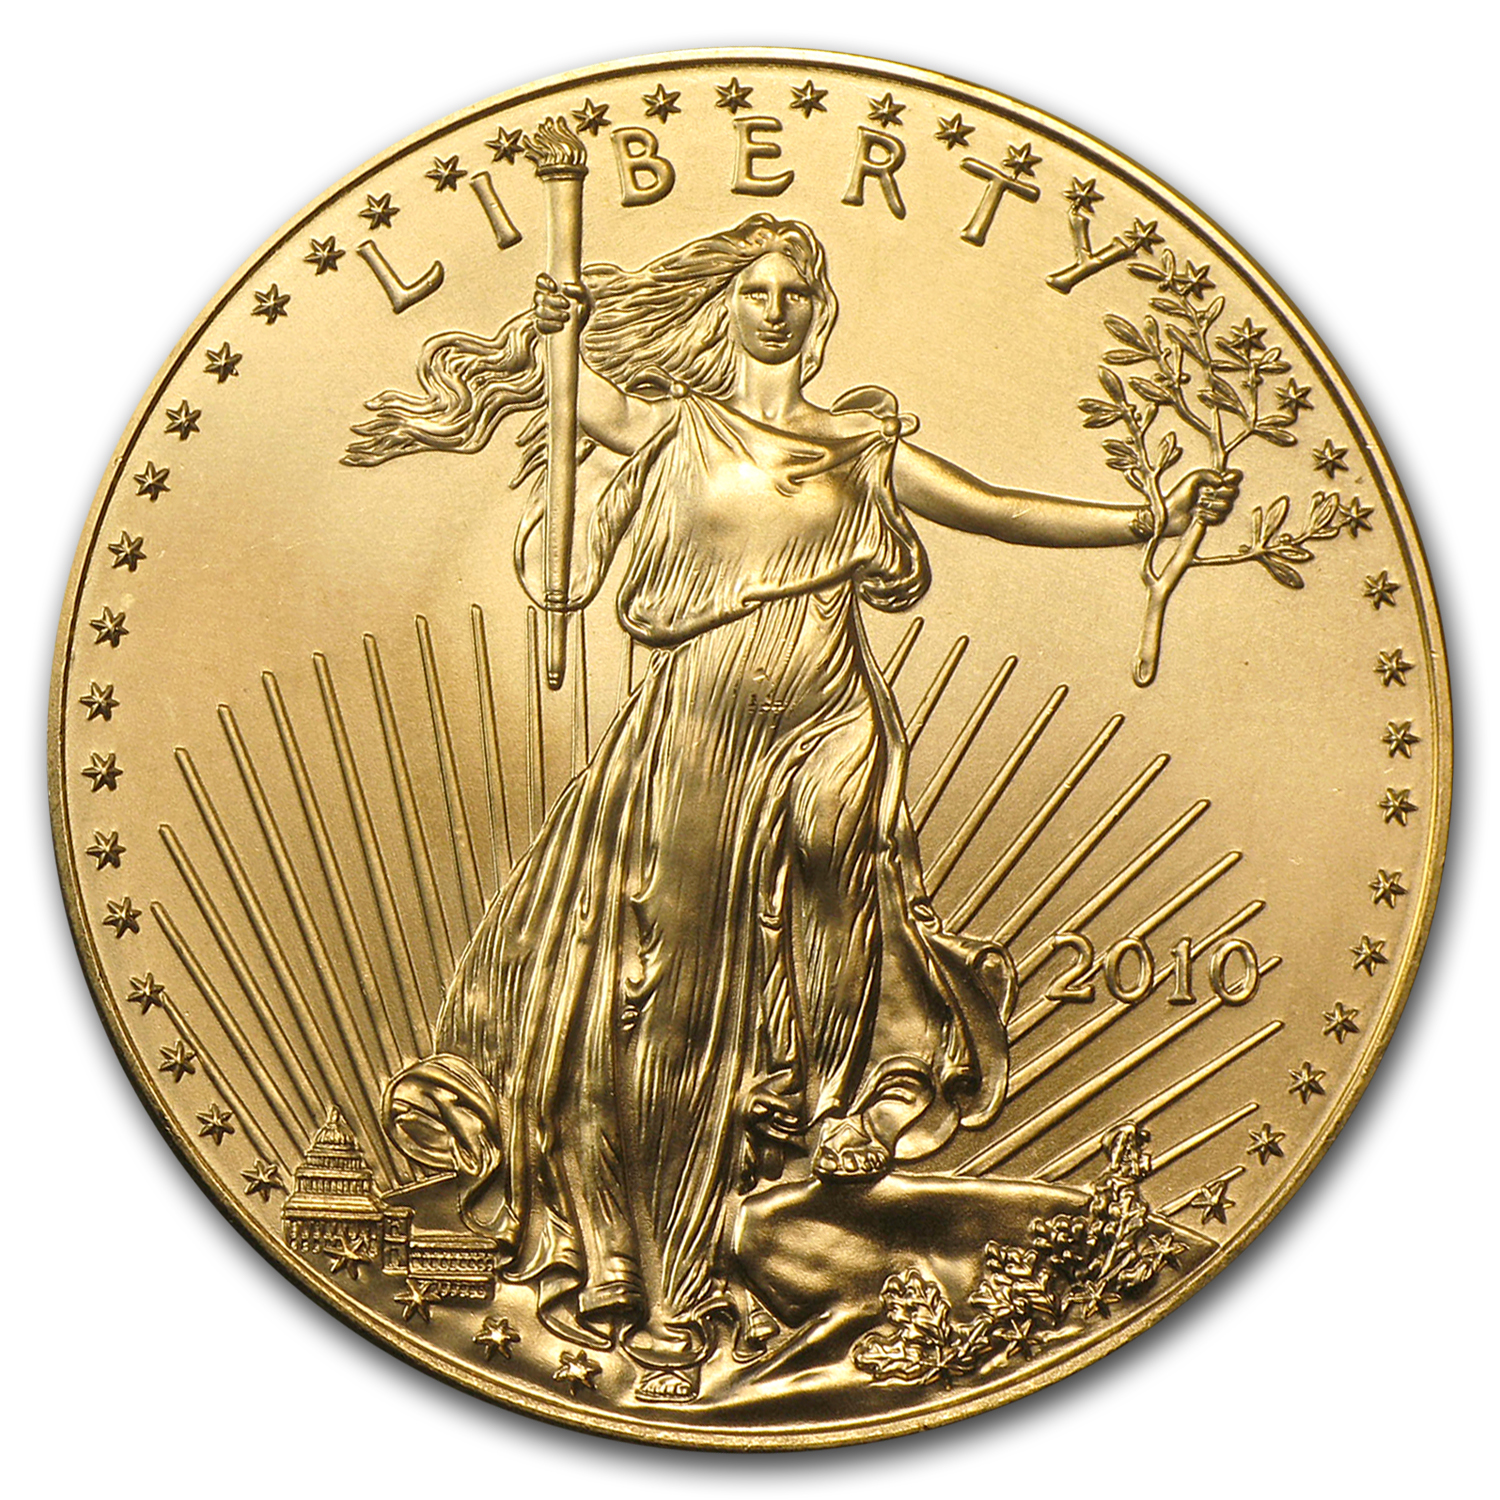 2010 1 oz Gold American Eagle (BU)